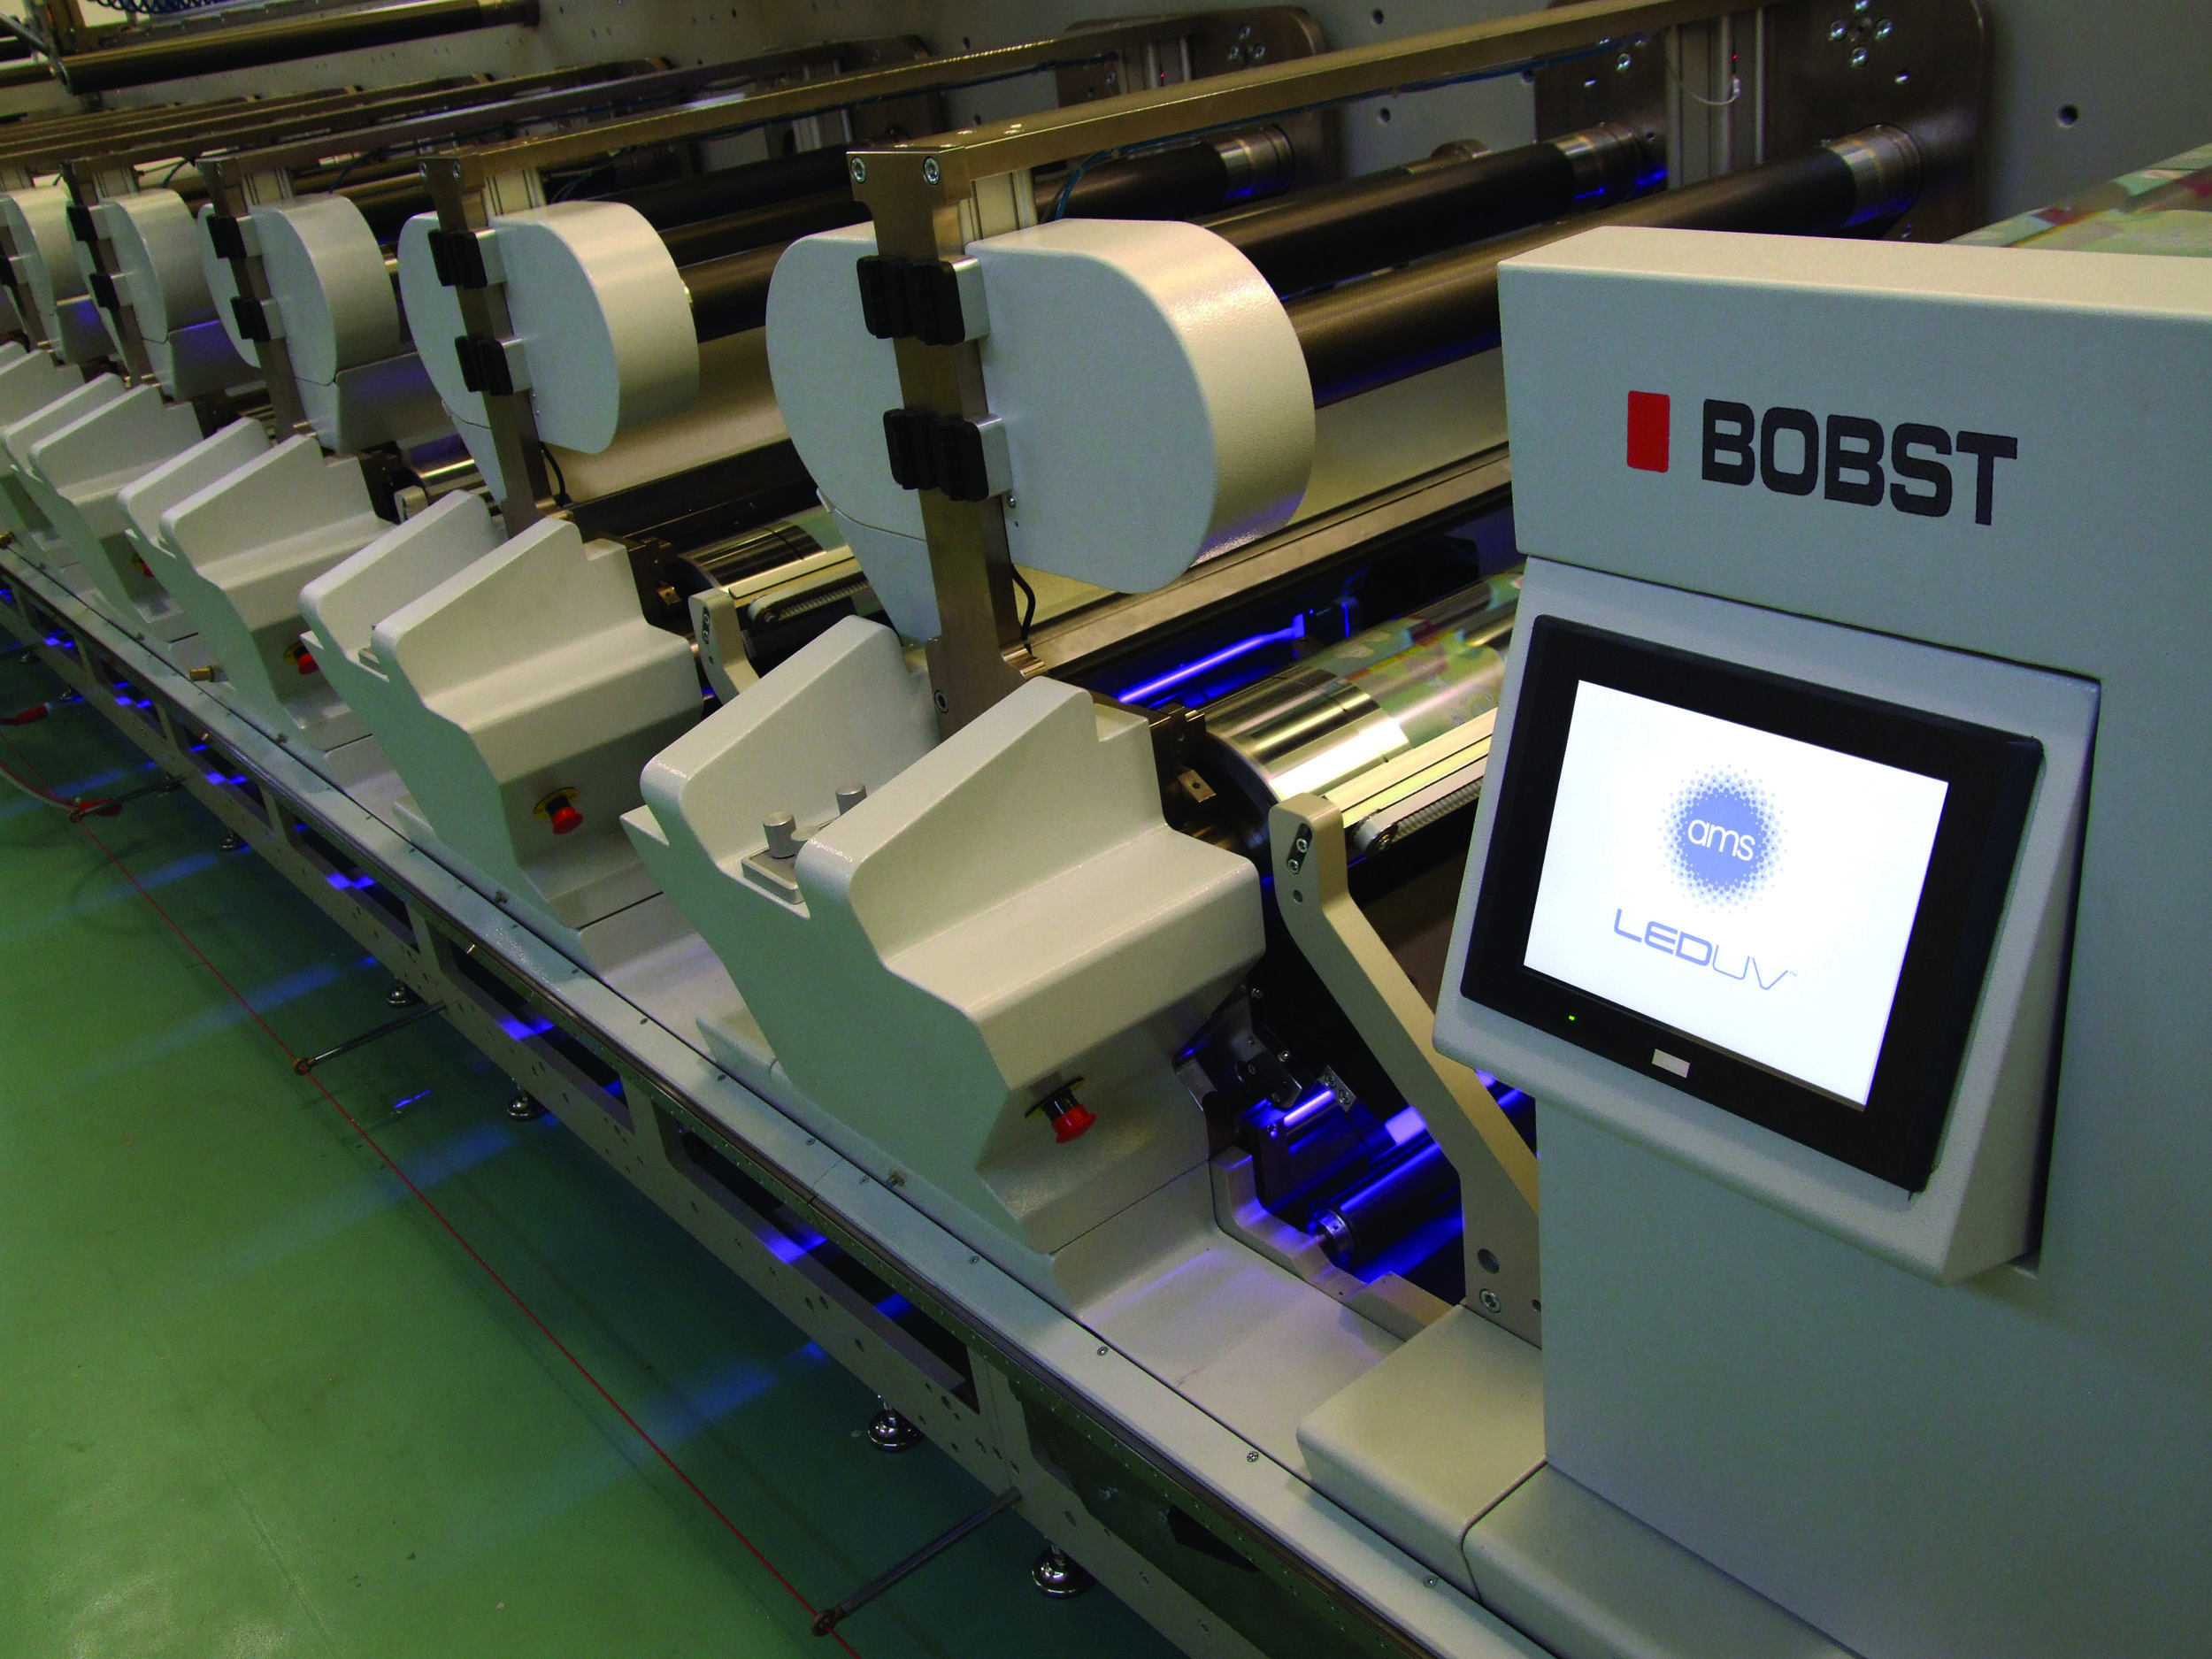 Shown here on a Bobst M5, AMS's LED UV curing system will be installed on a Bobst M6 press and running live onsite at LabelExpo Americas 2016. The trade show is set for the Donald E. Stephens Convention Center in Rosemont, IL, September 13-15.